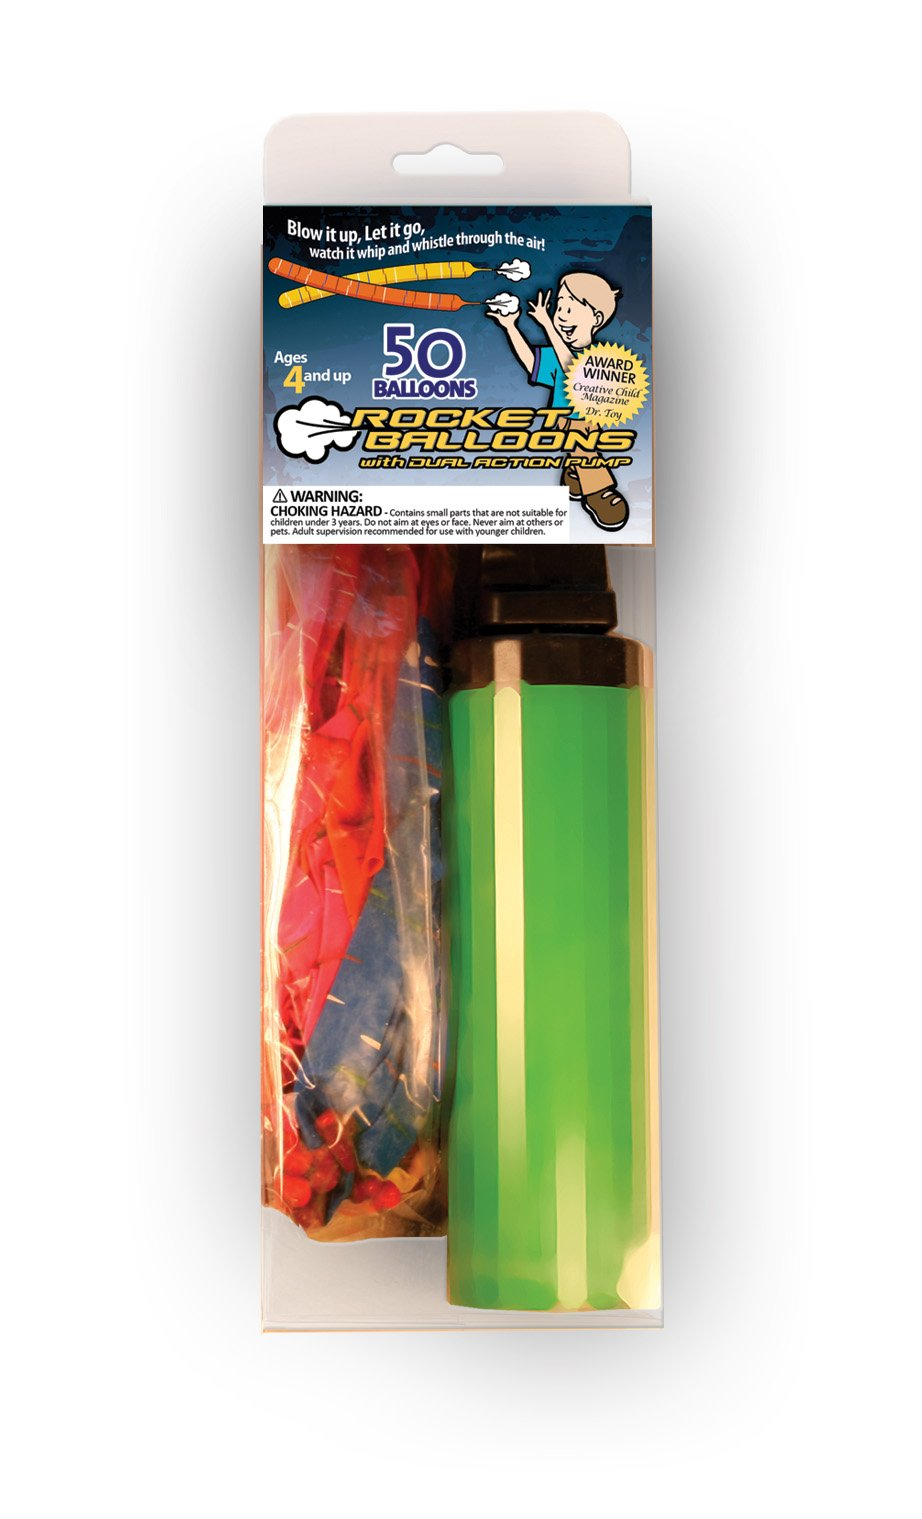 Rocket Balloons with Dual Action Pump, 50 Balloons (Colors May Vary)